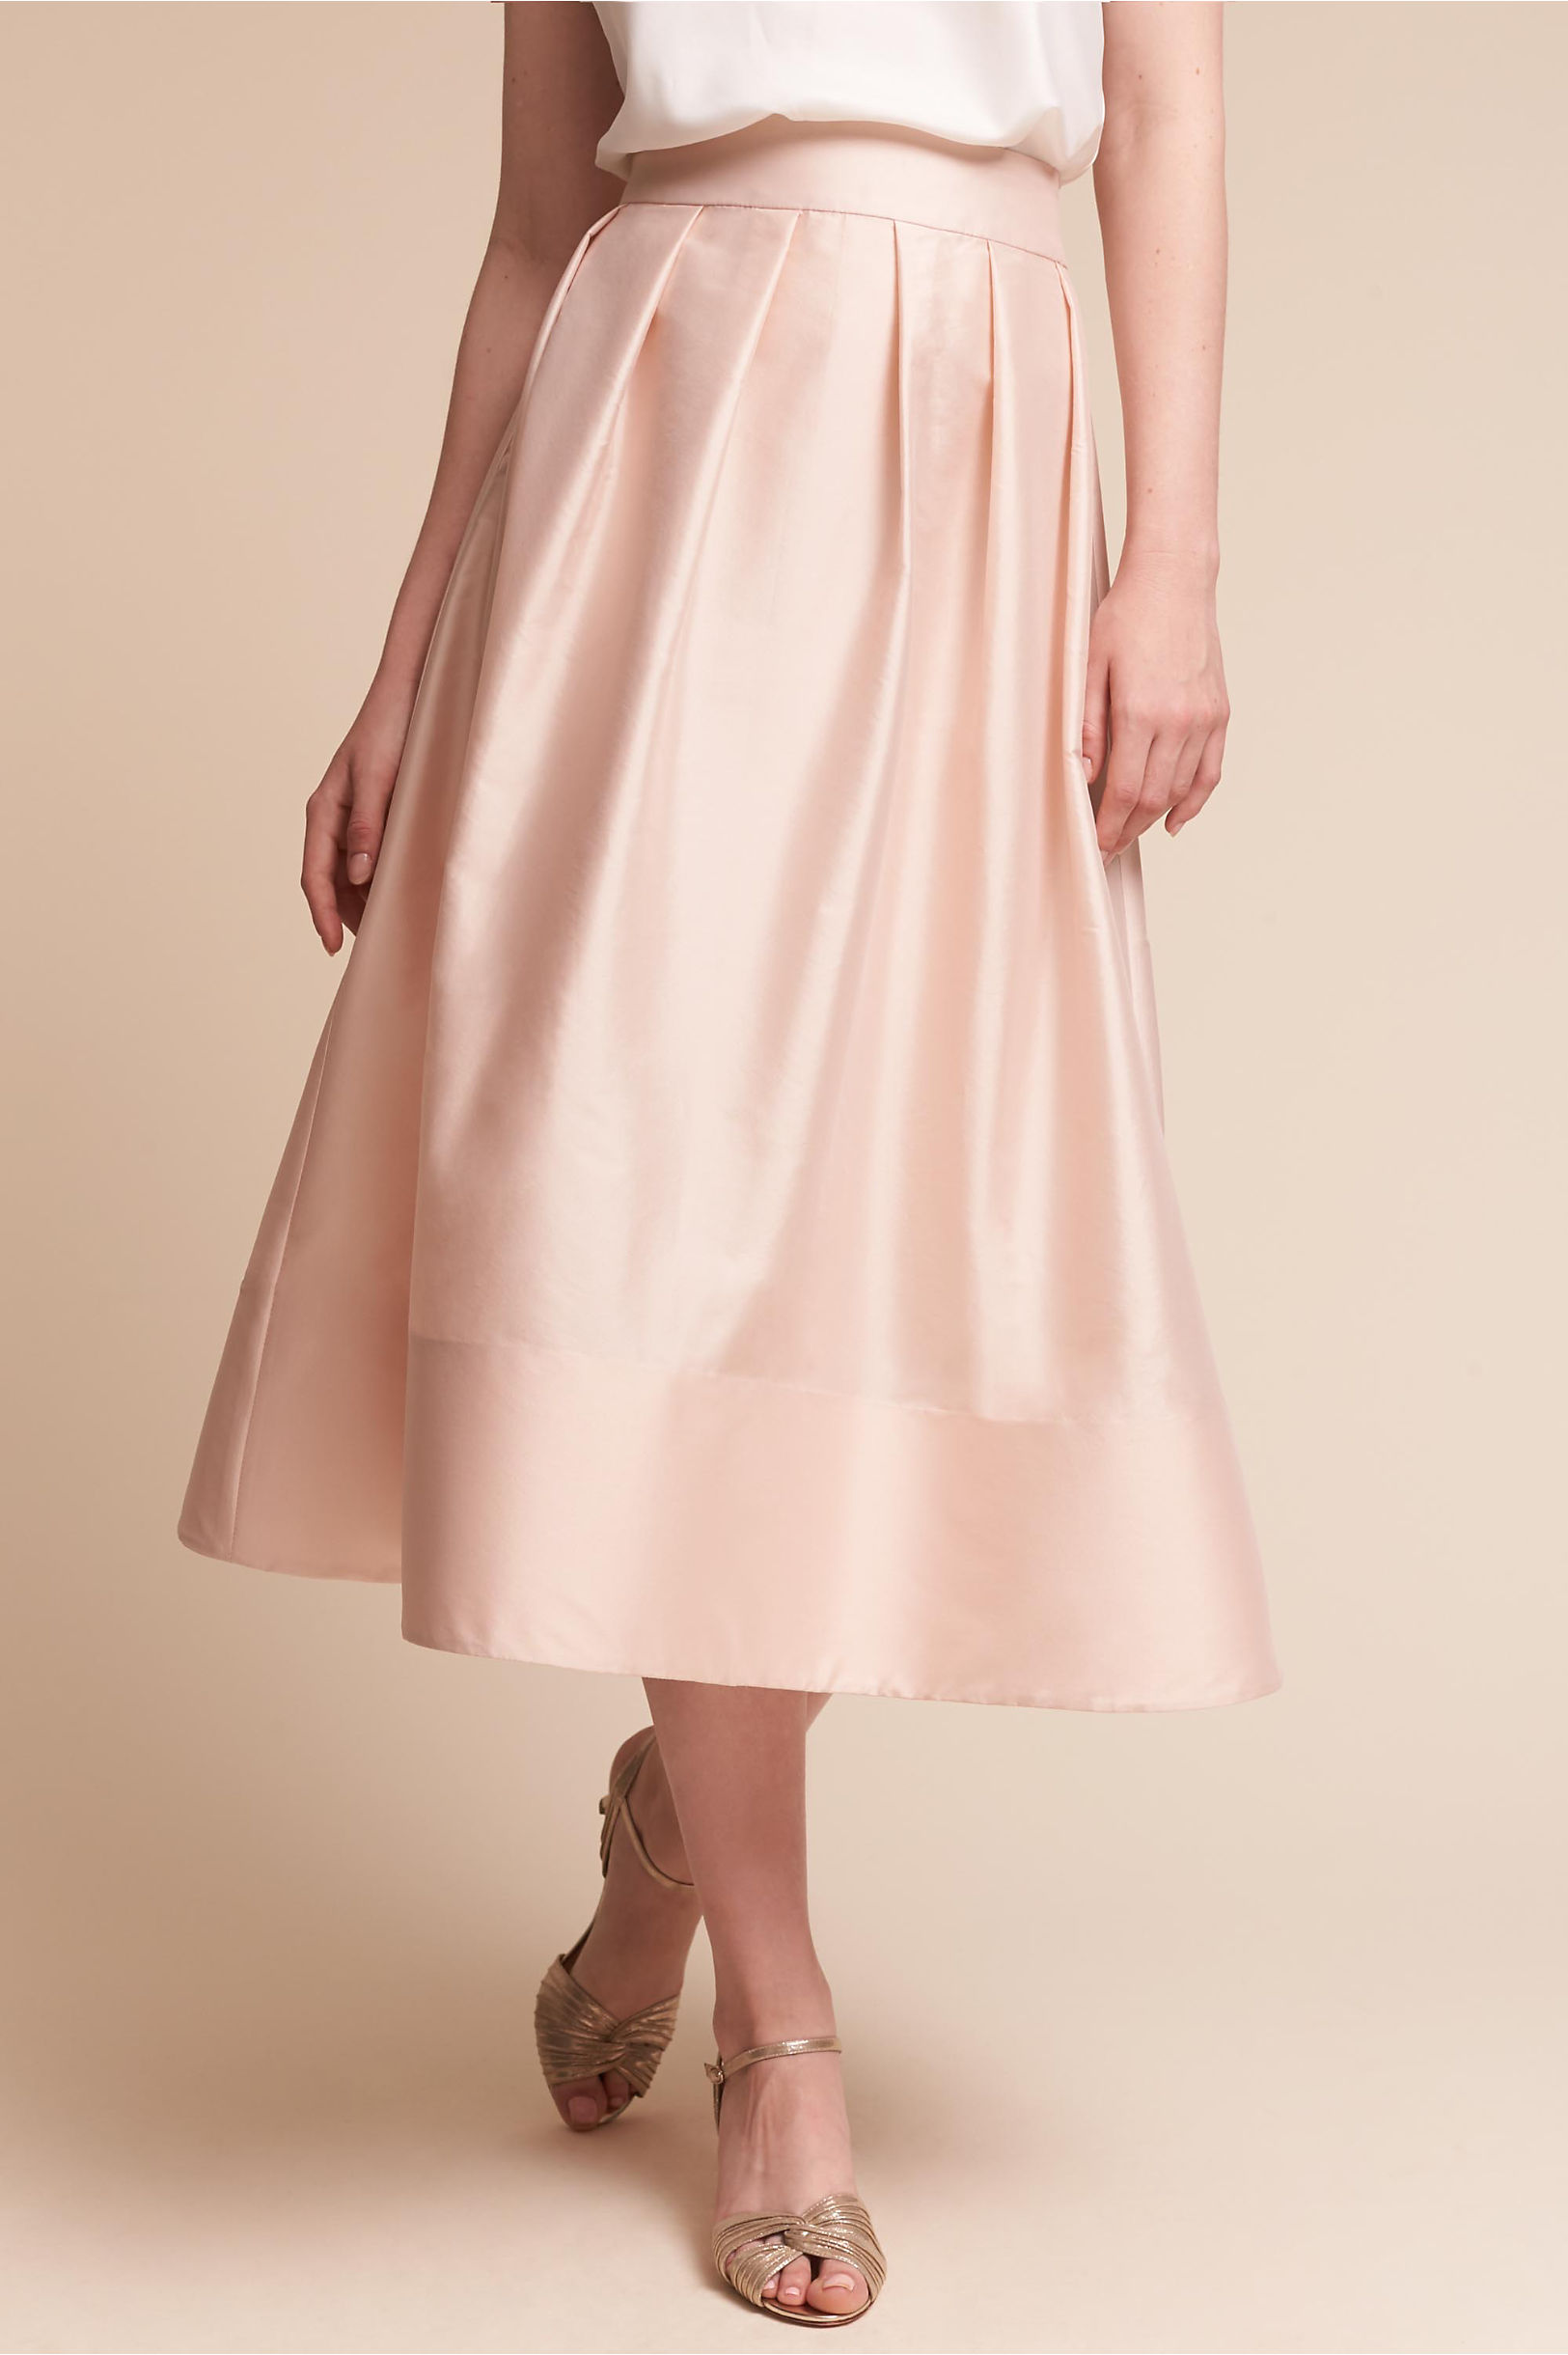 Rockport Skirt - Think outside the (dress) box and consider a beautiful skirt! Bridesmaids can pair with their own strappy tank to complete the look. Price: Retail $160, now just $60 on BHLDN (hurry! sizes limited)